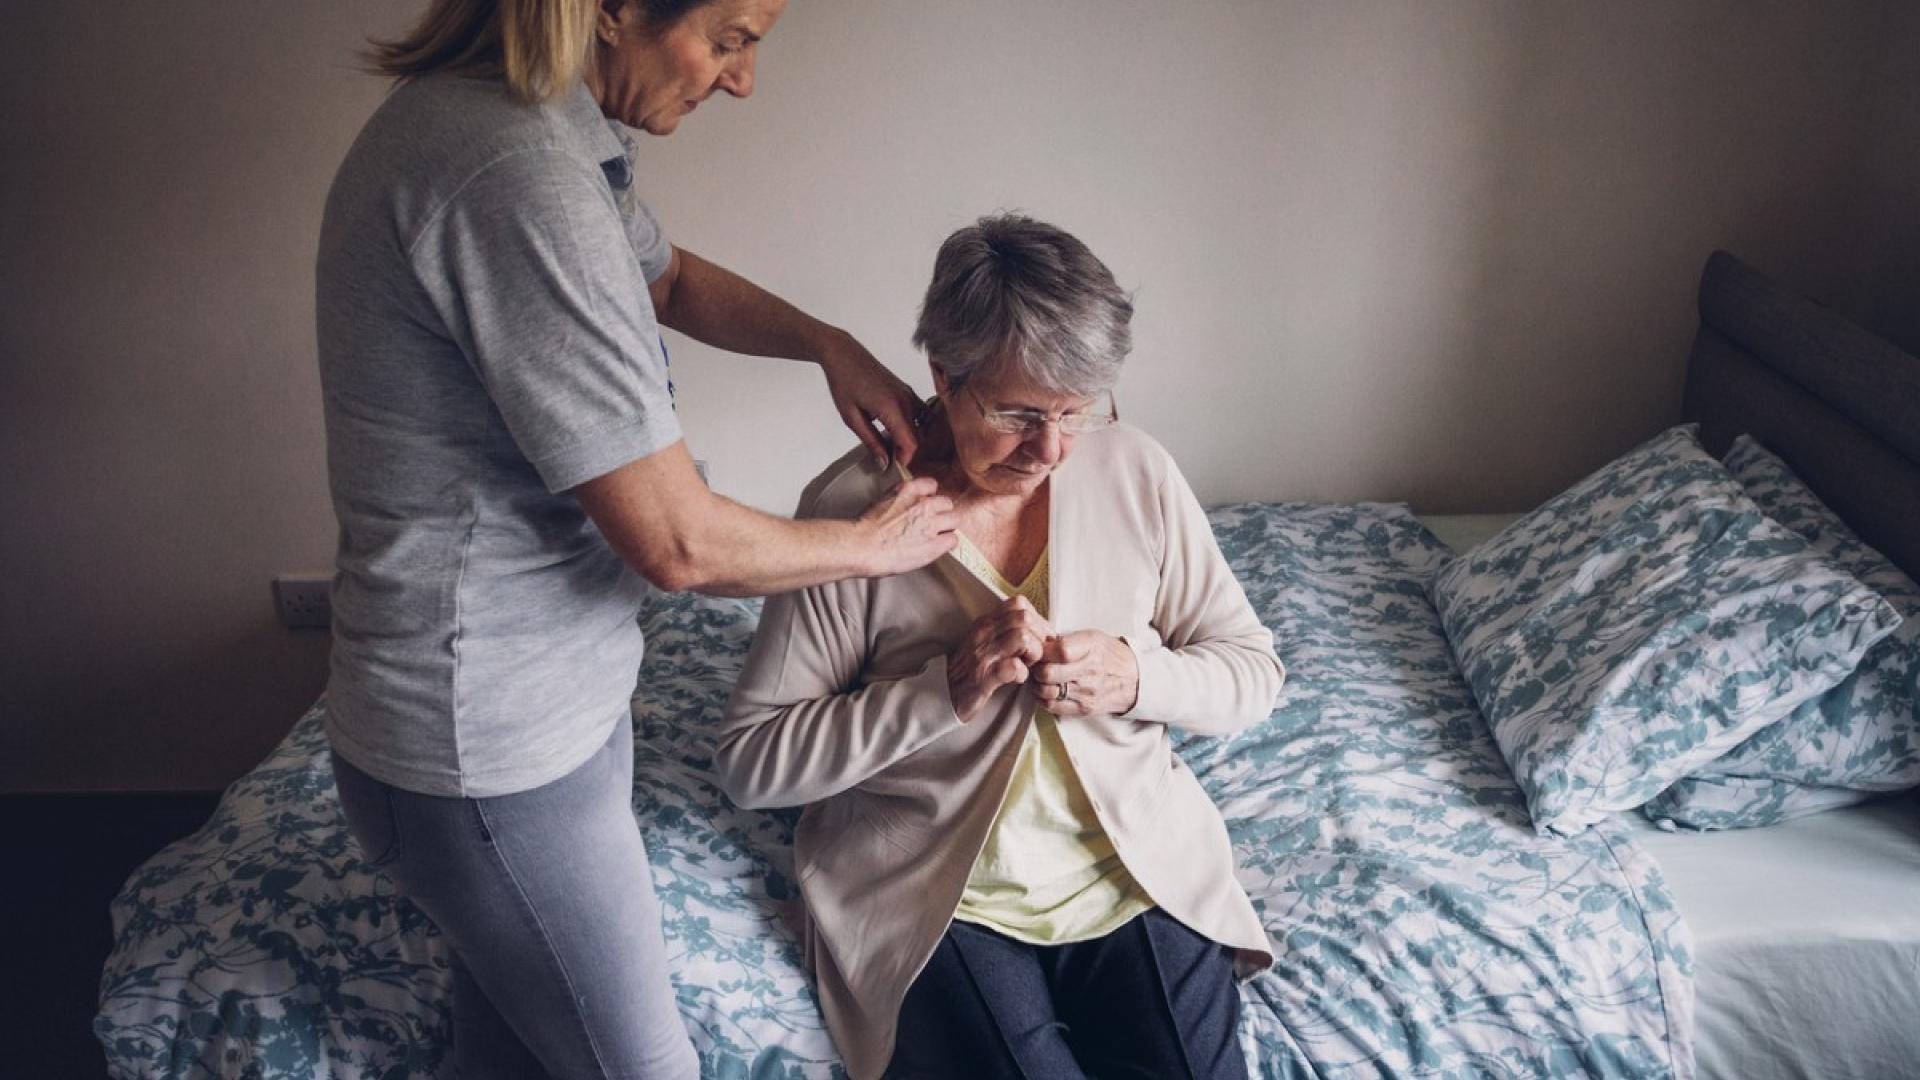 Family members caring for dementia patients aren't getting enough sleep